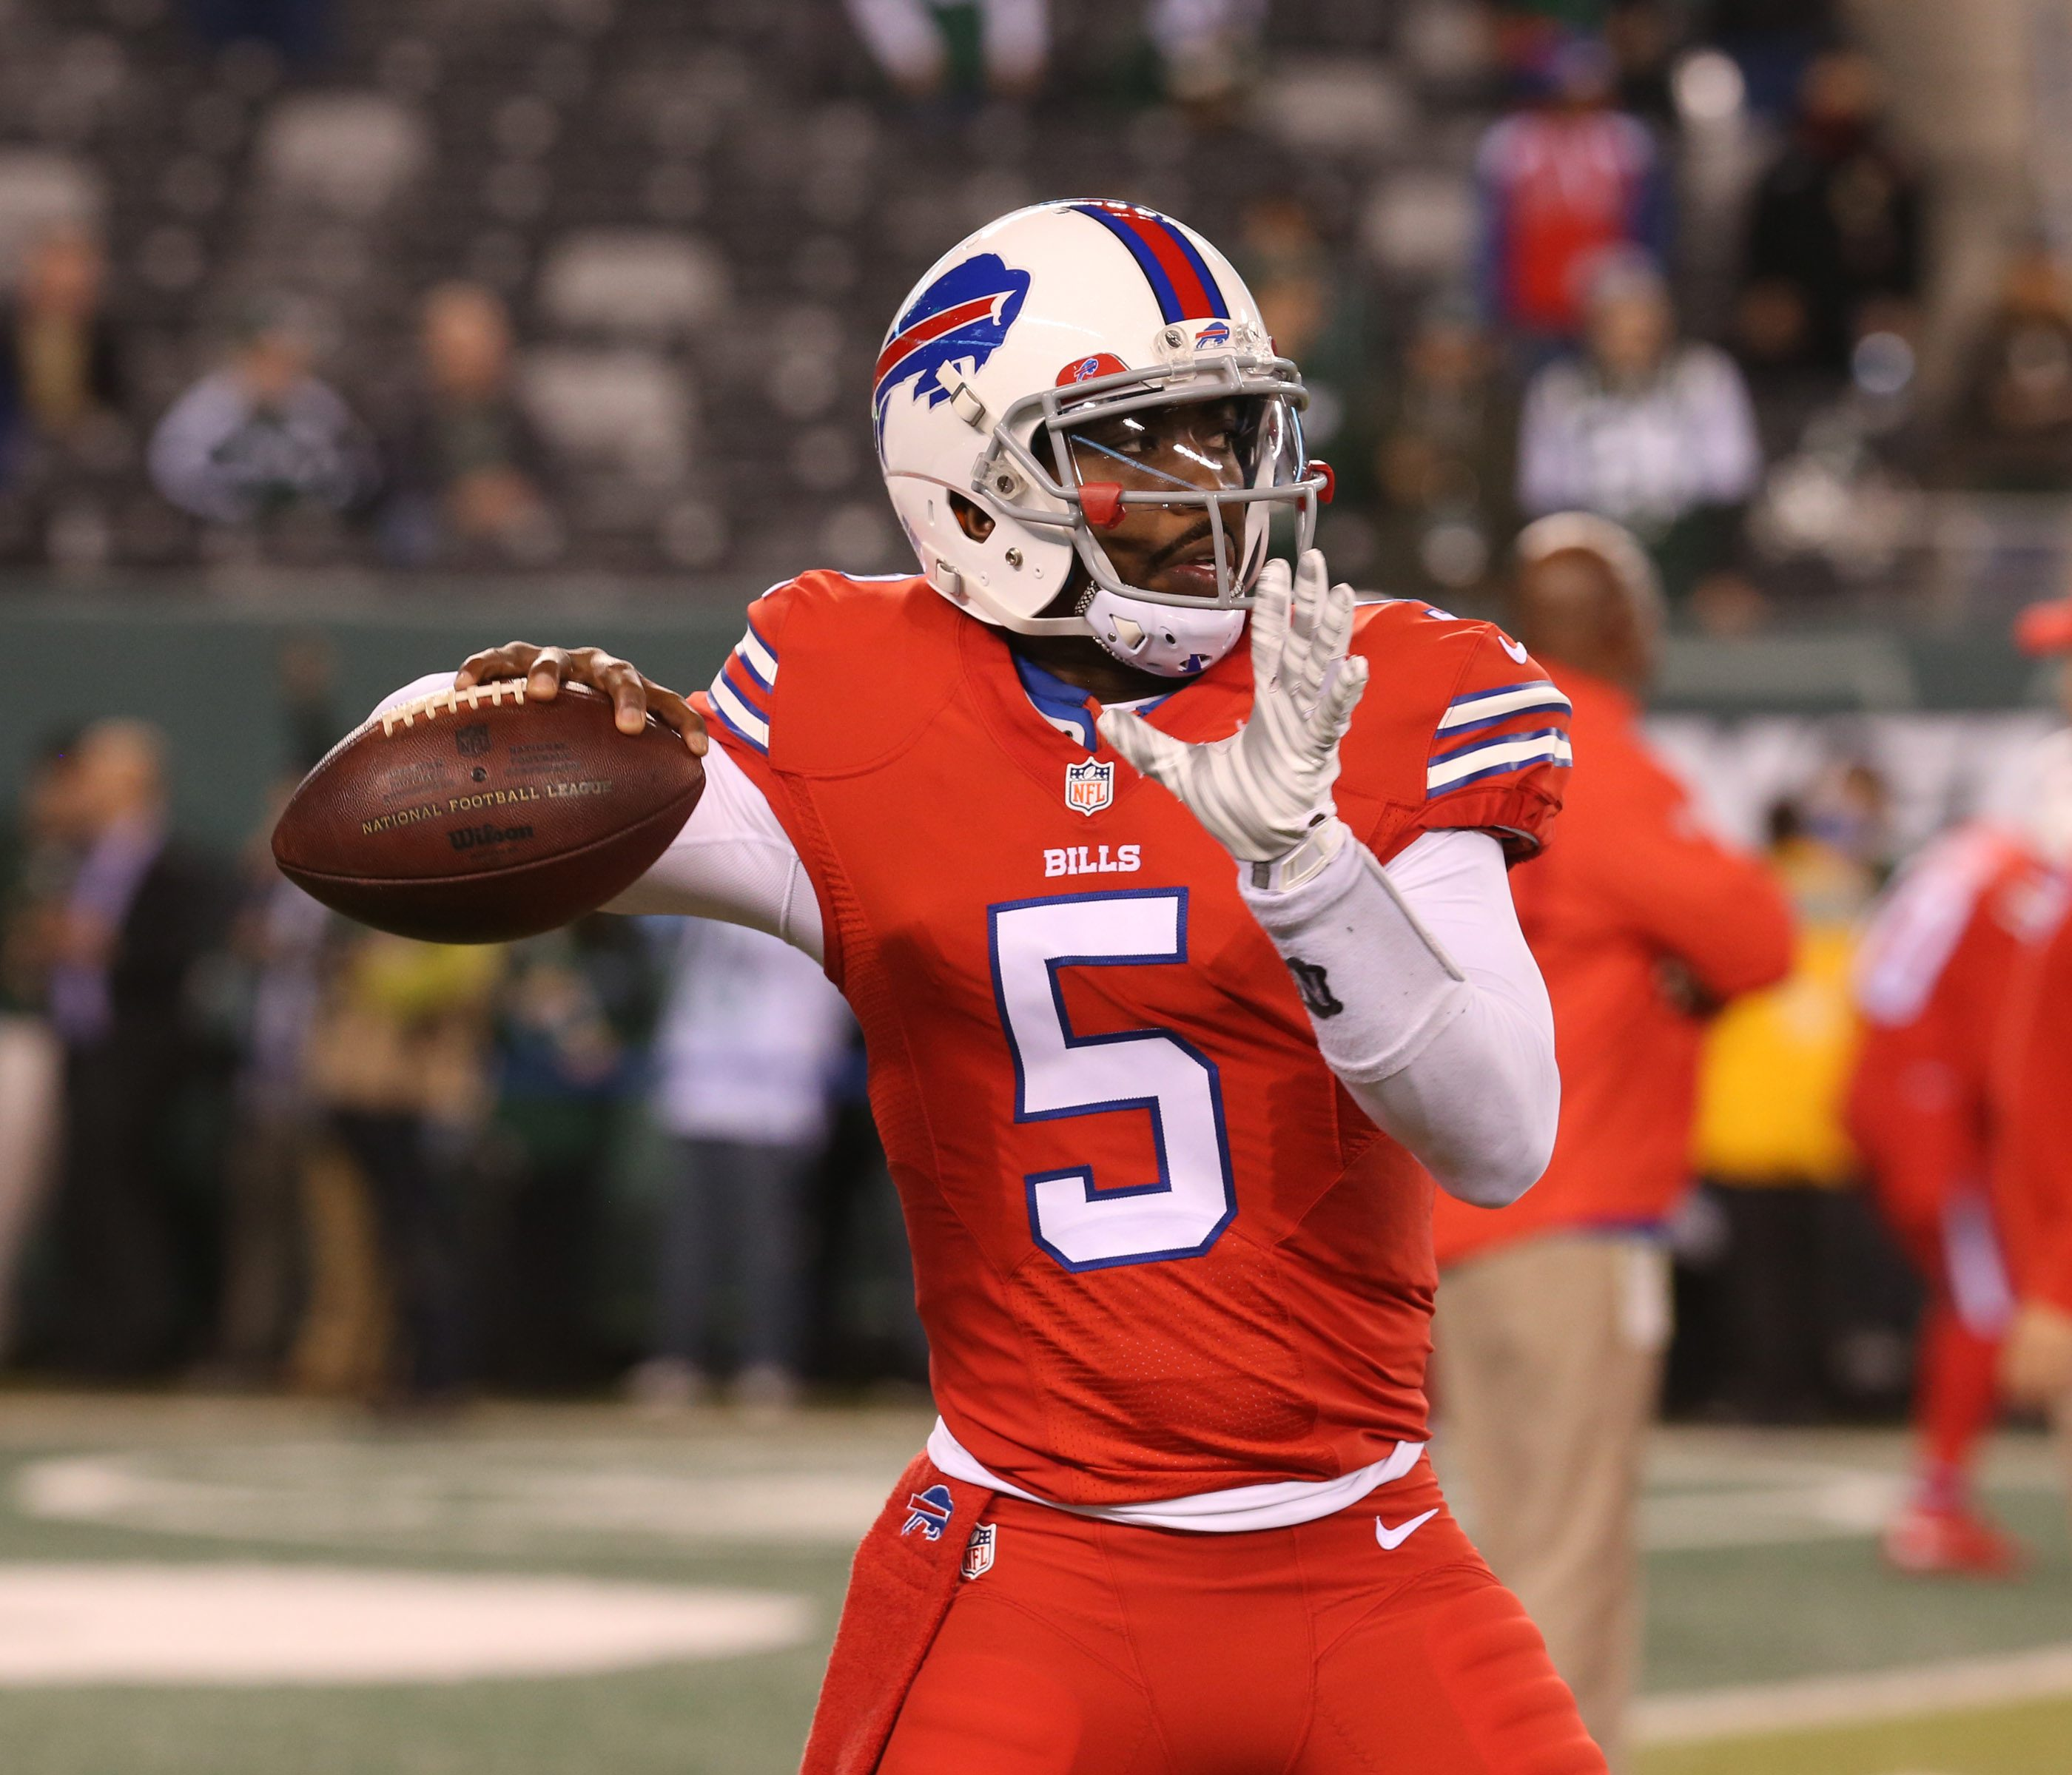 Bills quarterback Tyrod Taylor will don the red 'Color Rush' uniforms on Thursday night under clear skies in the inaugural tilt at New Era Field against the New York Jets. (James P. McCoy/Buffalo News)